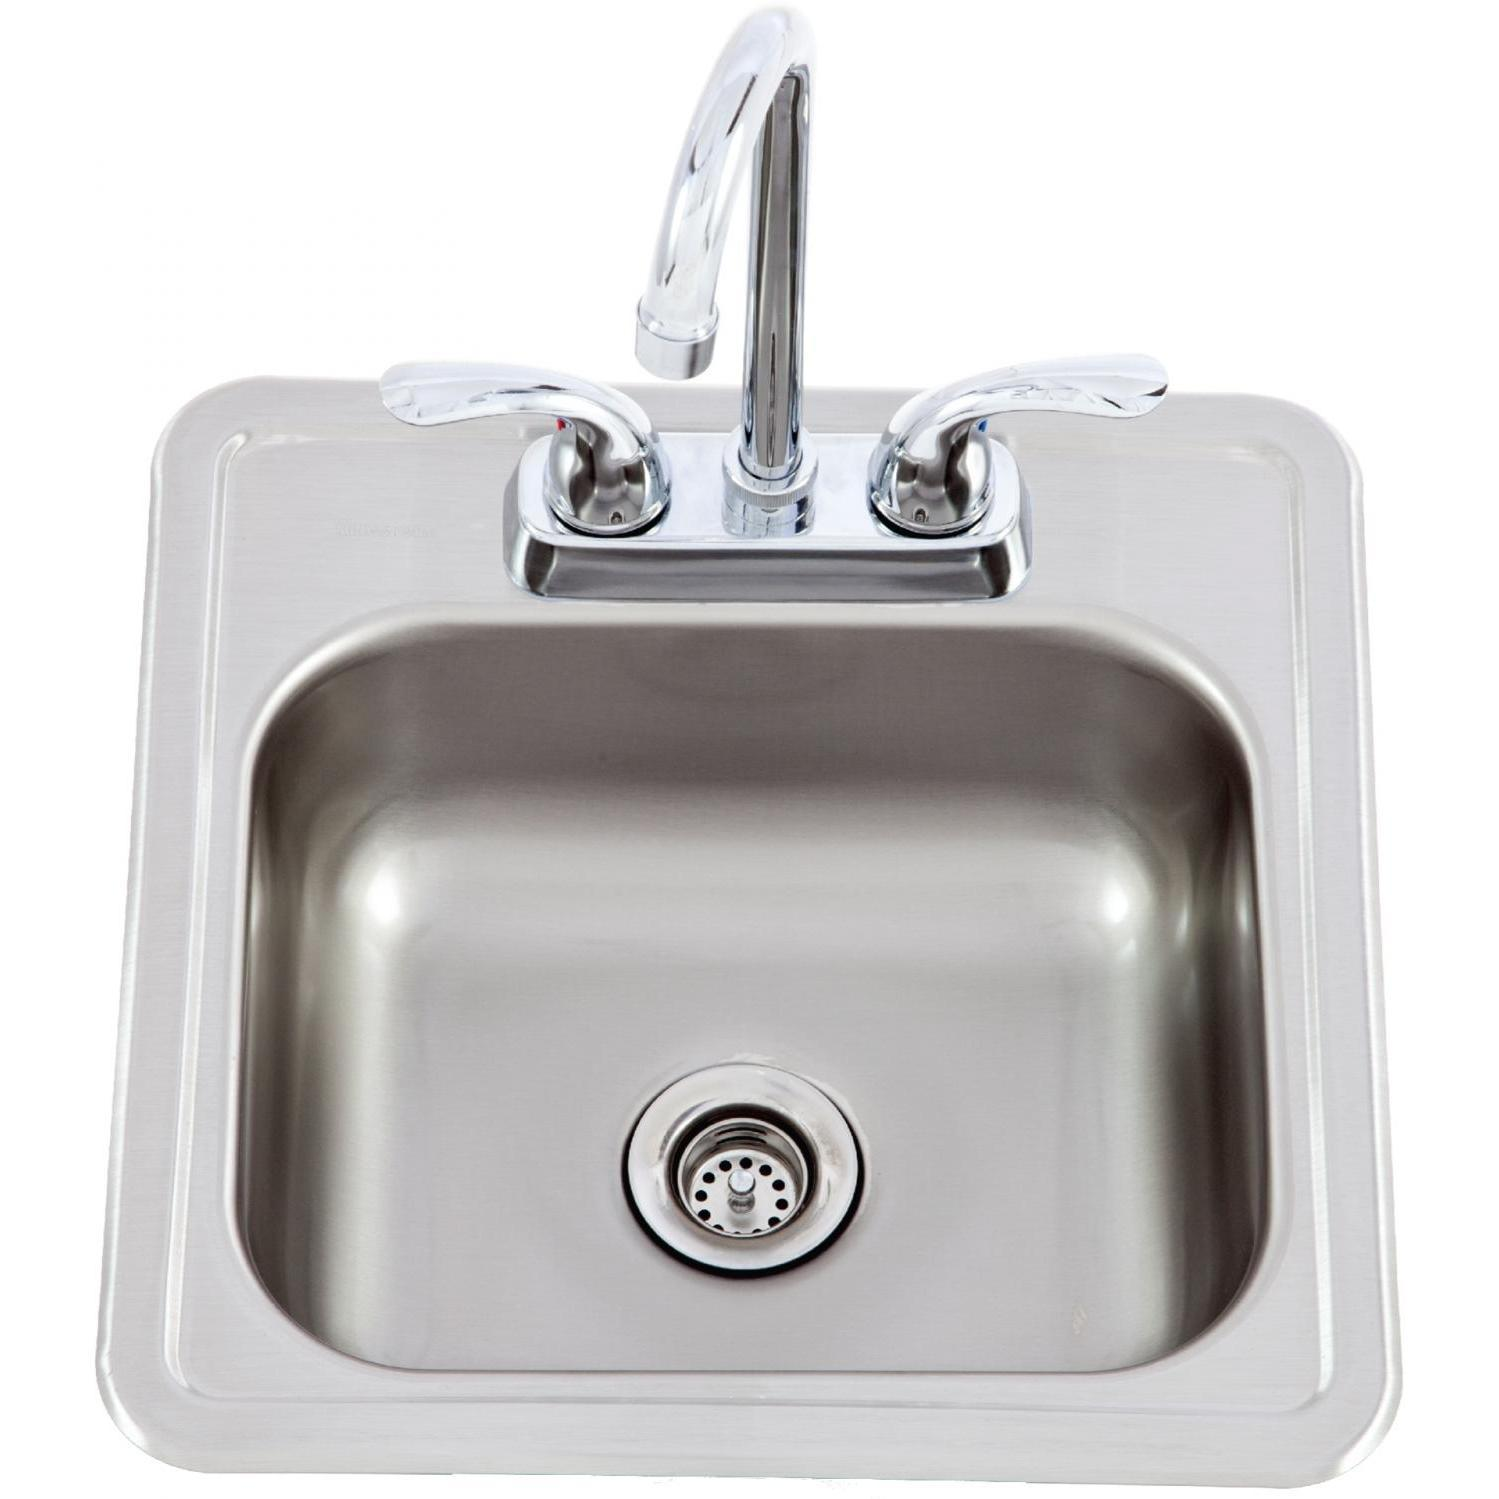 Lion 15 X 15 Outdoor Rated Stainless Steel Sink With Hot Cold Faucet 54167 The Outdoor Appliance Store